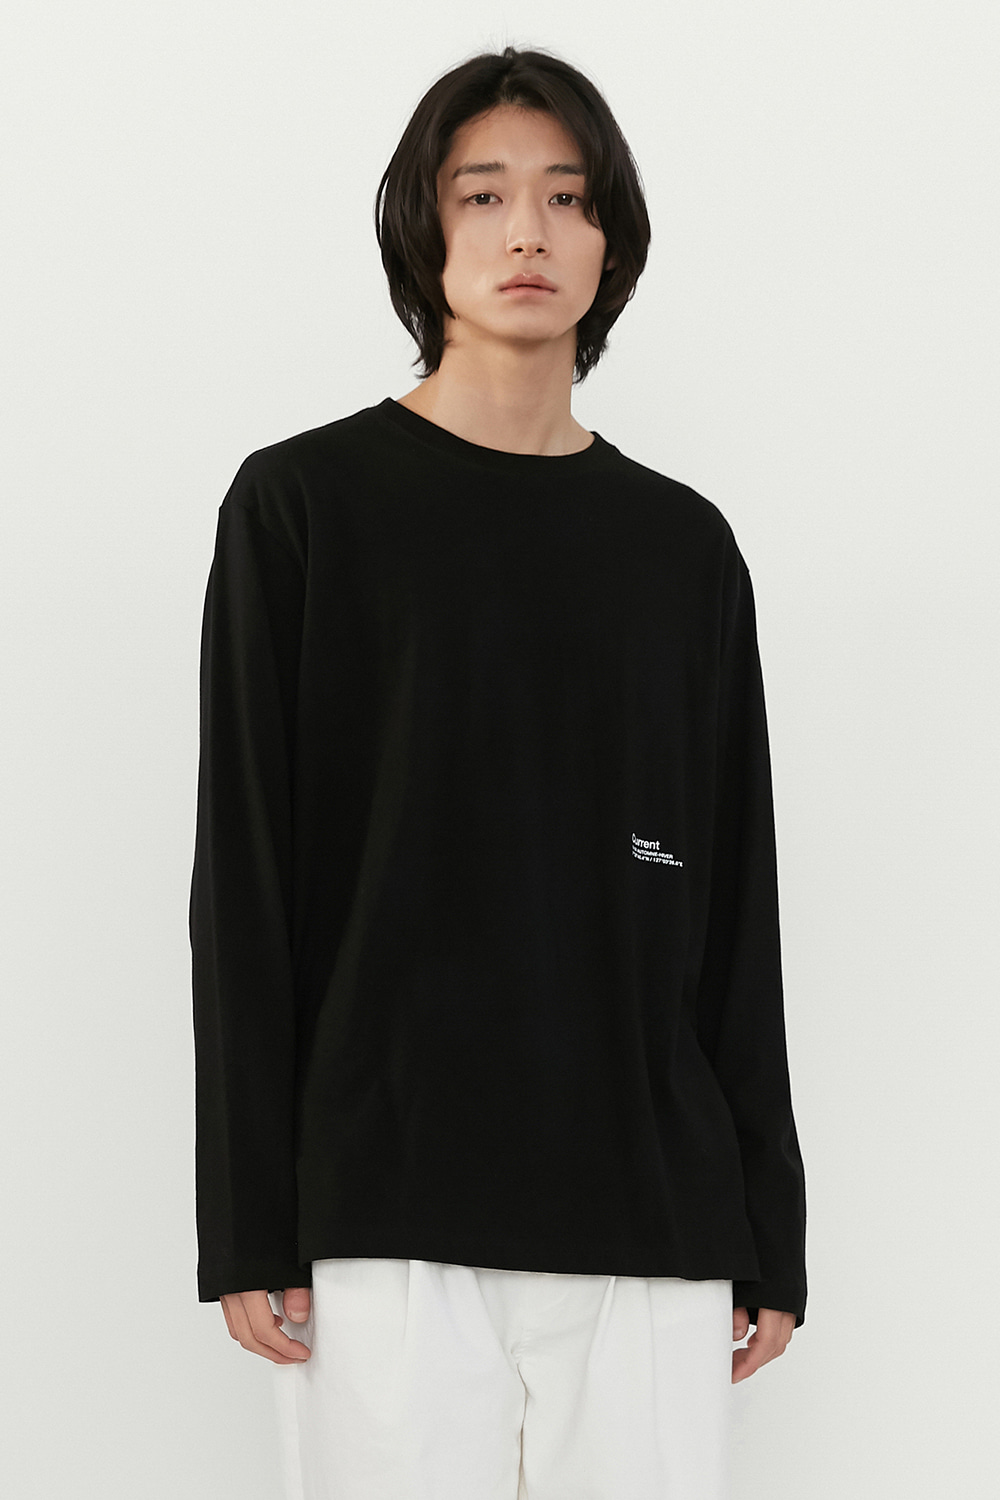 Logo Long Sleeve Men [Black]